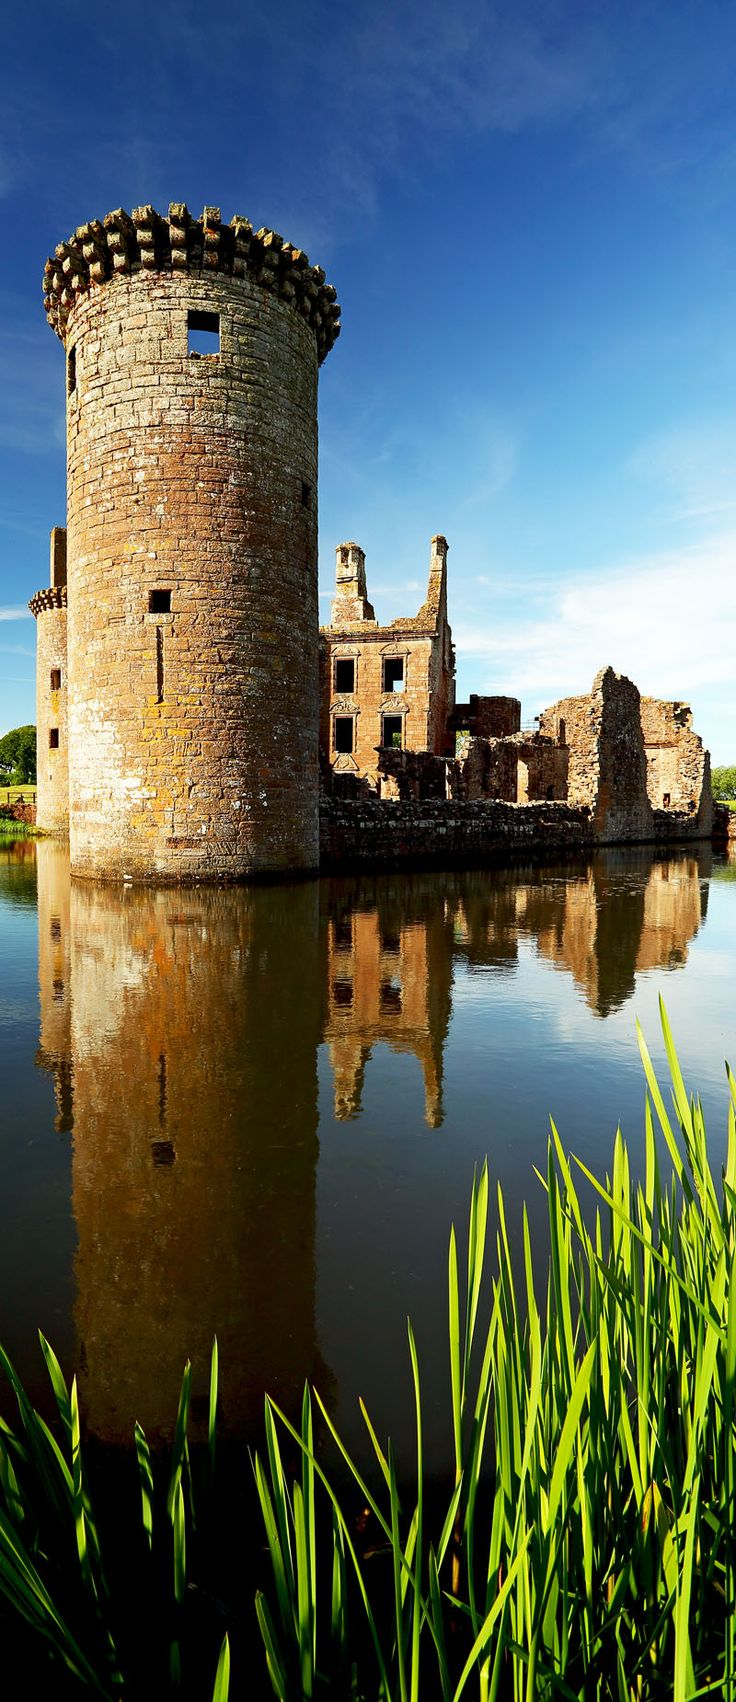 Caerlaverock Castle reflecting on the moat that surrounds the castle in Dumfrieshire, Scotland.